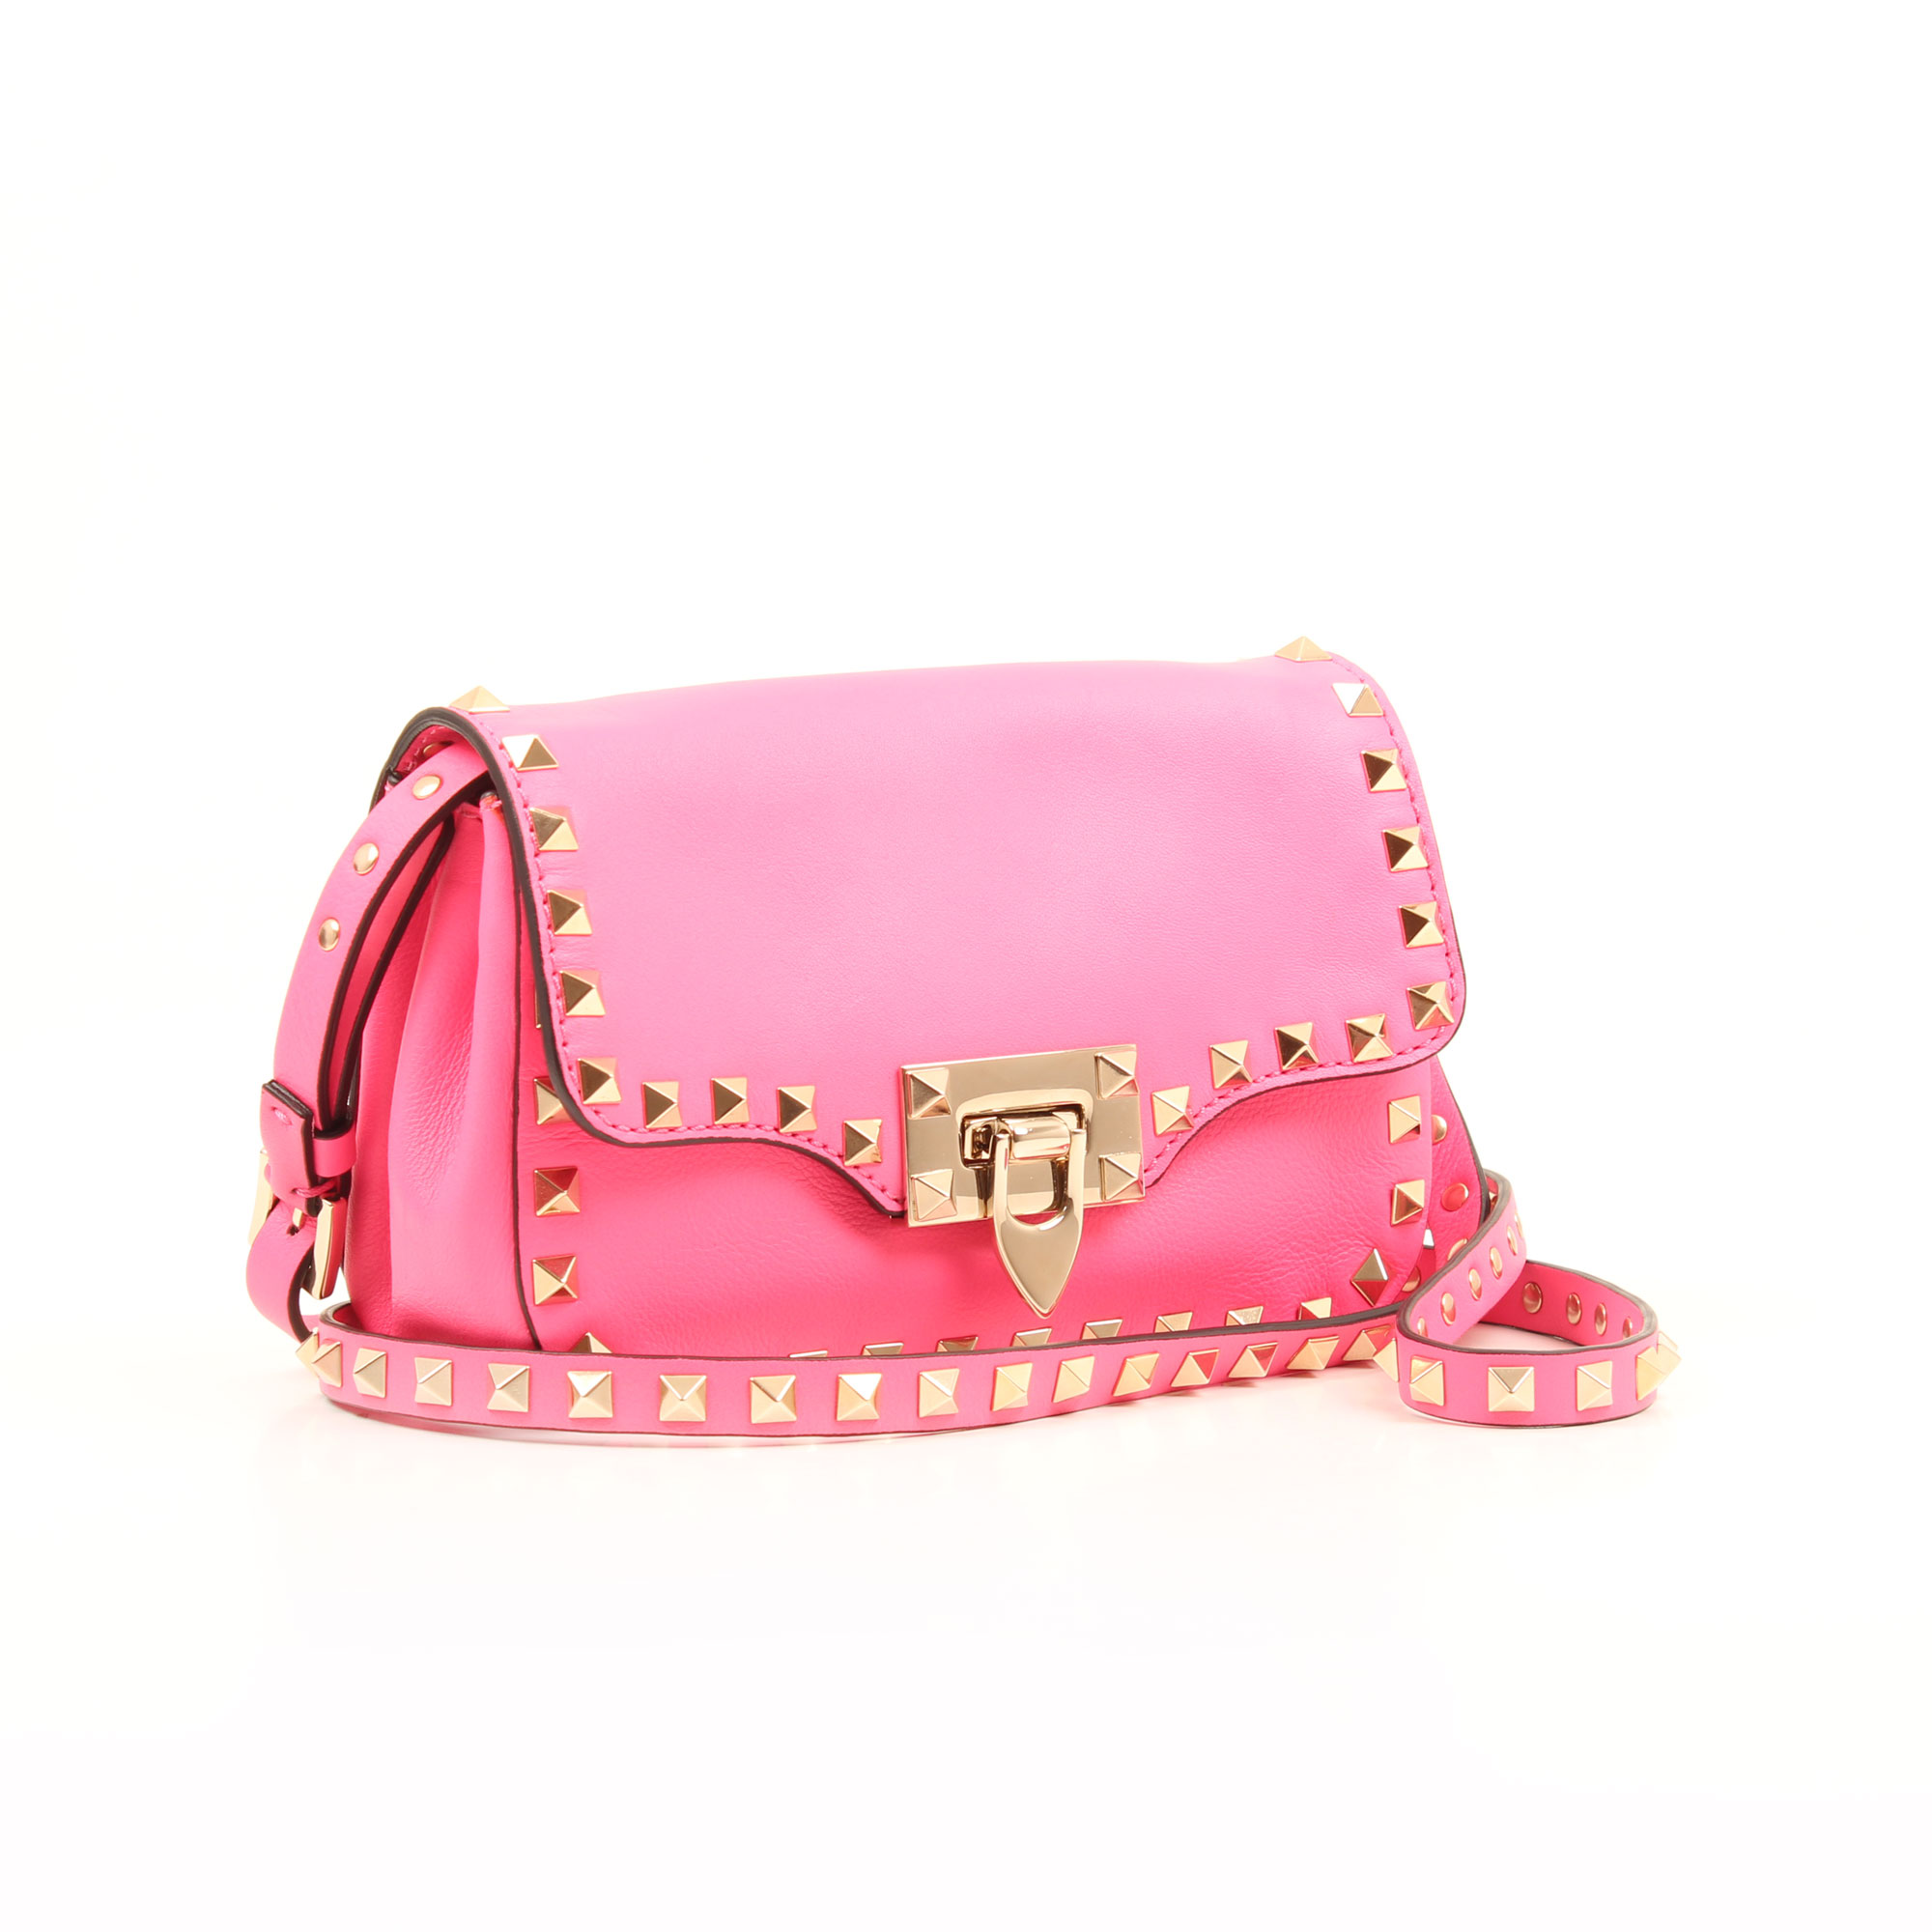 General image of valentino mini rockstud pink bag